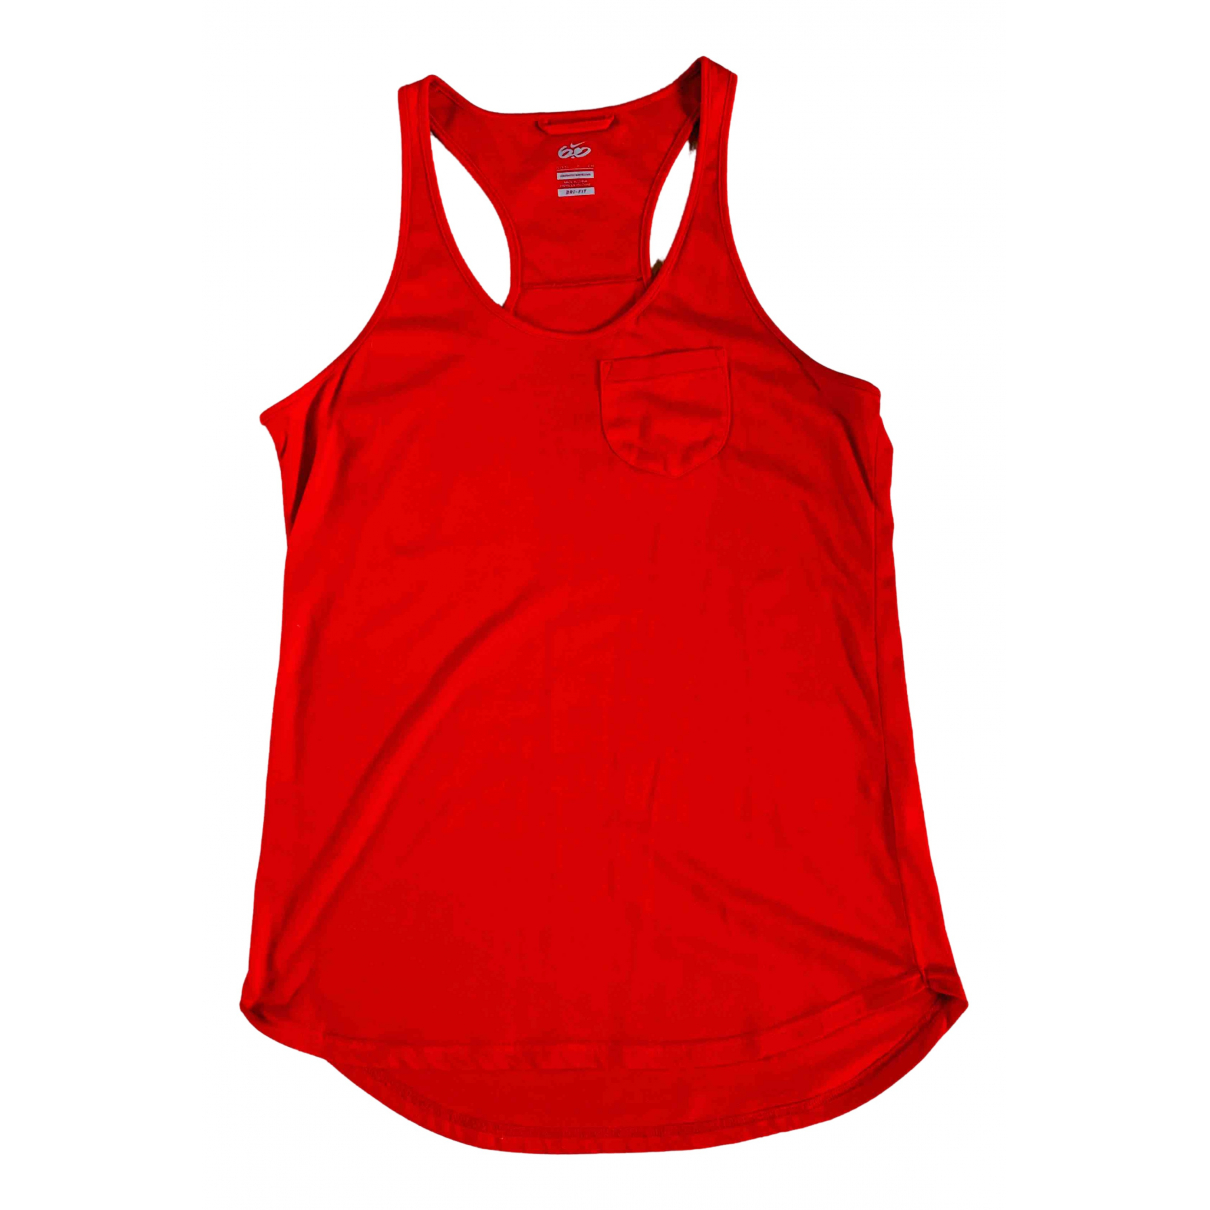 Nike \N Red Cotton  top for Women S International